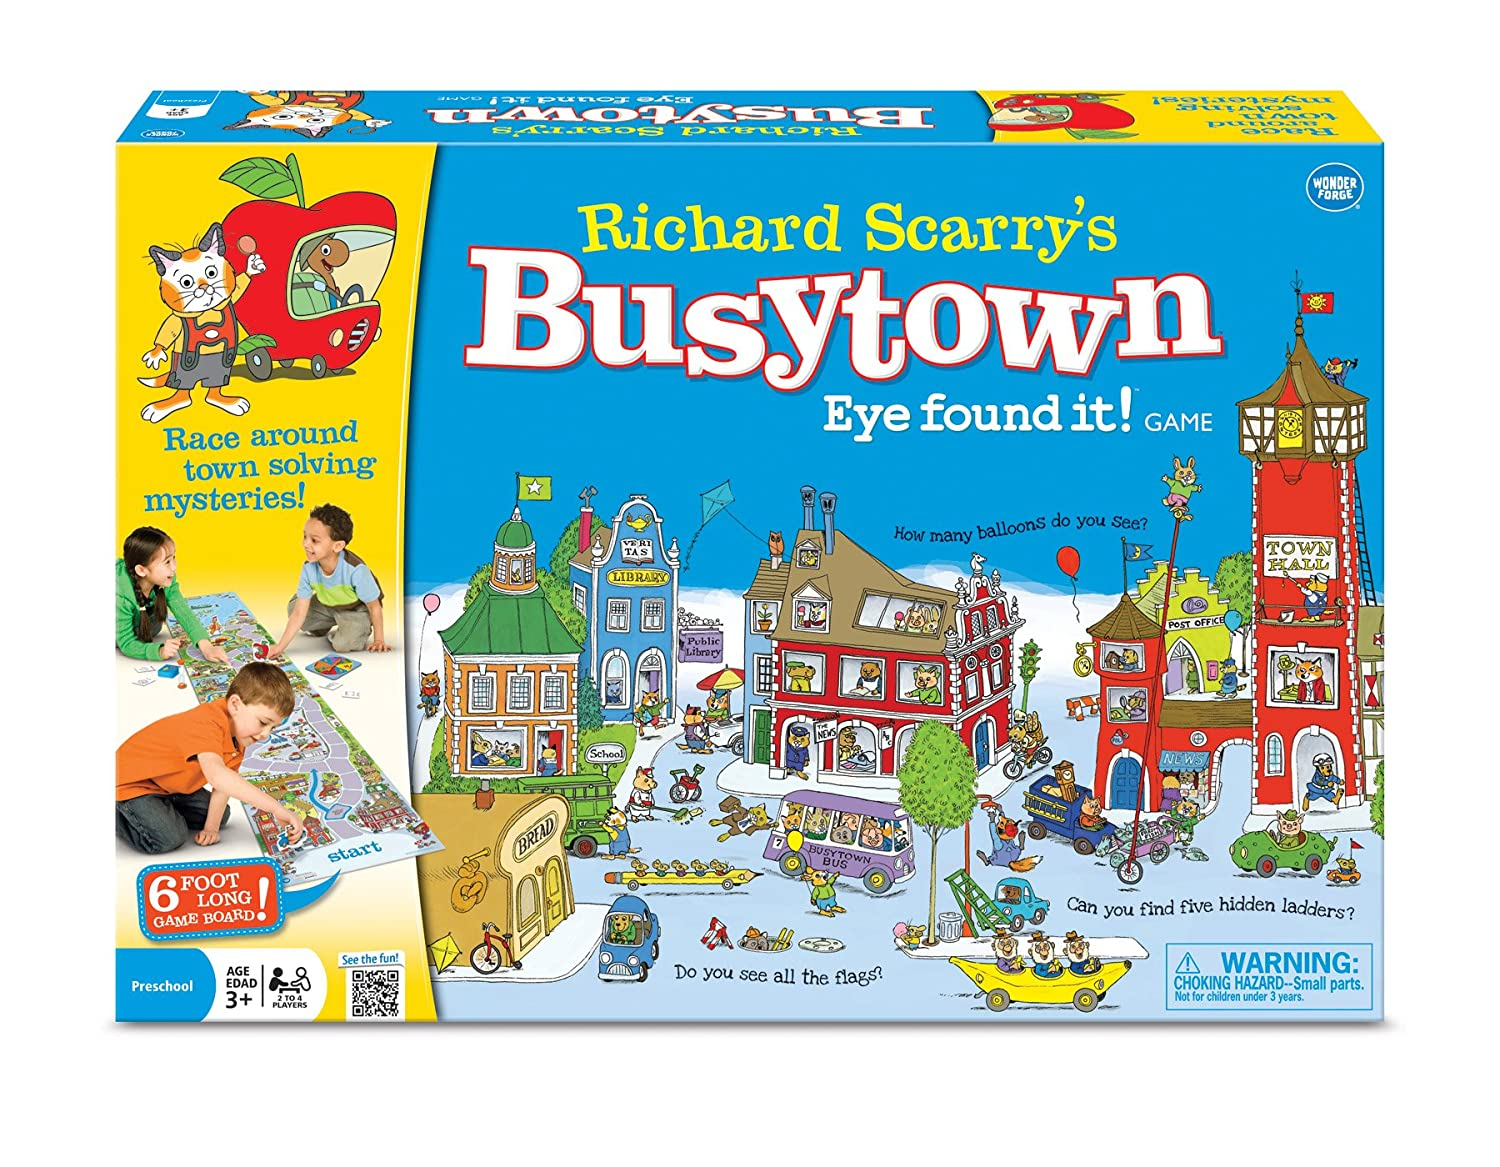 Busytown board game for preschoolers